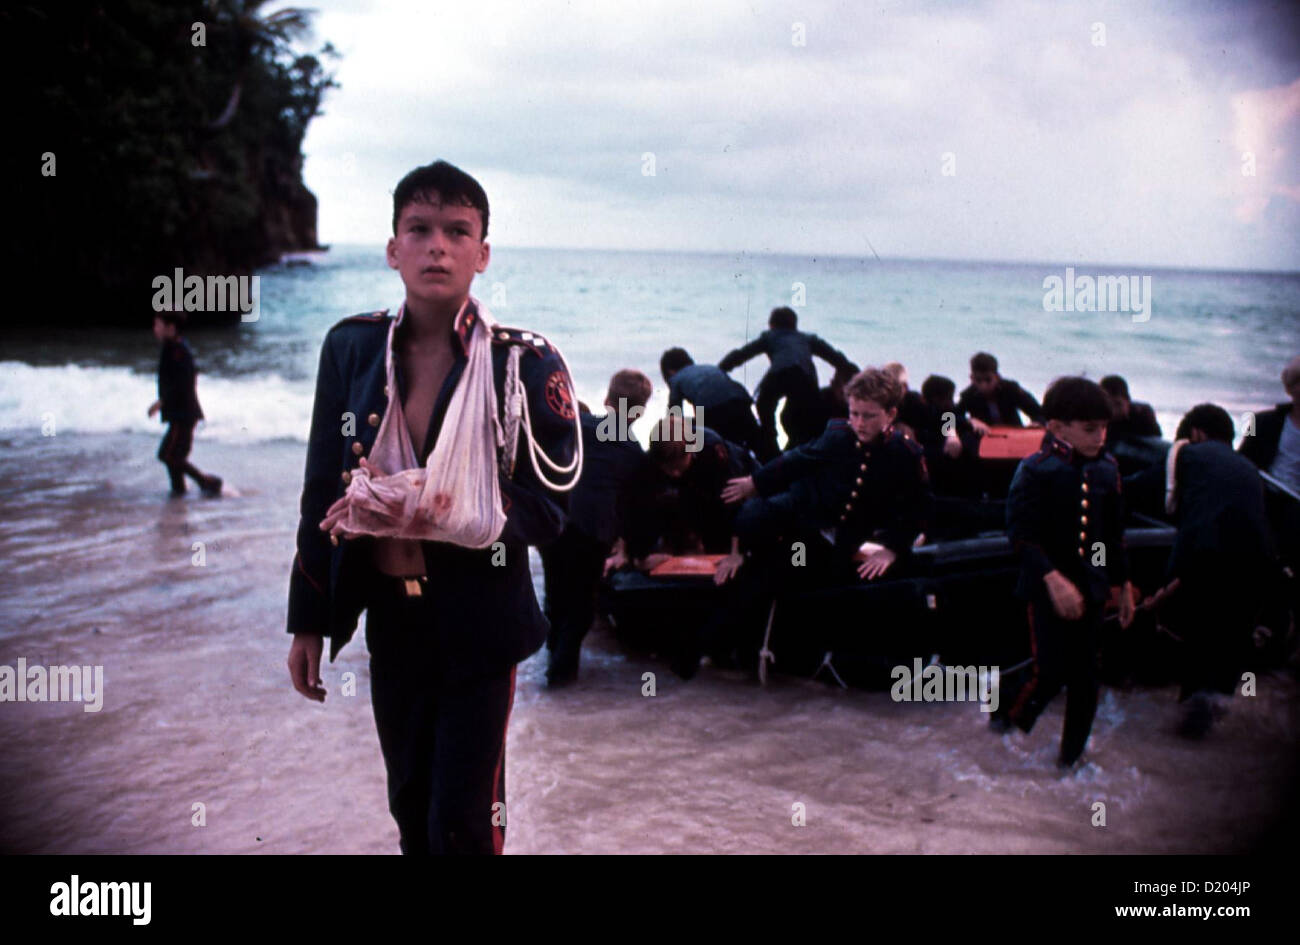 Lord Of The Flies Film Stock Photos & Lord Of The Flies Film Stock ...